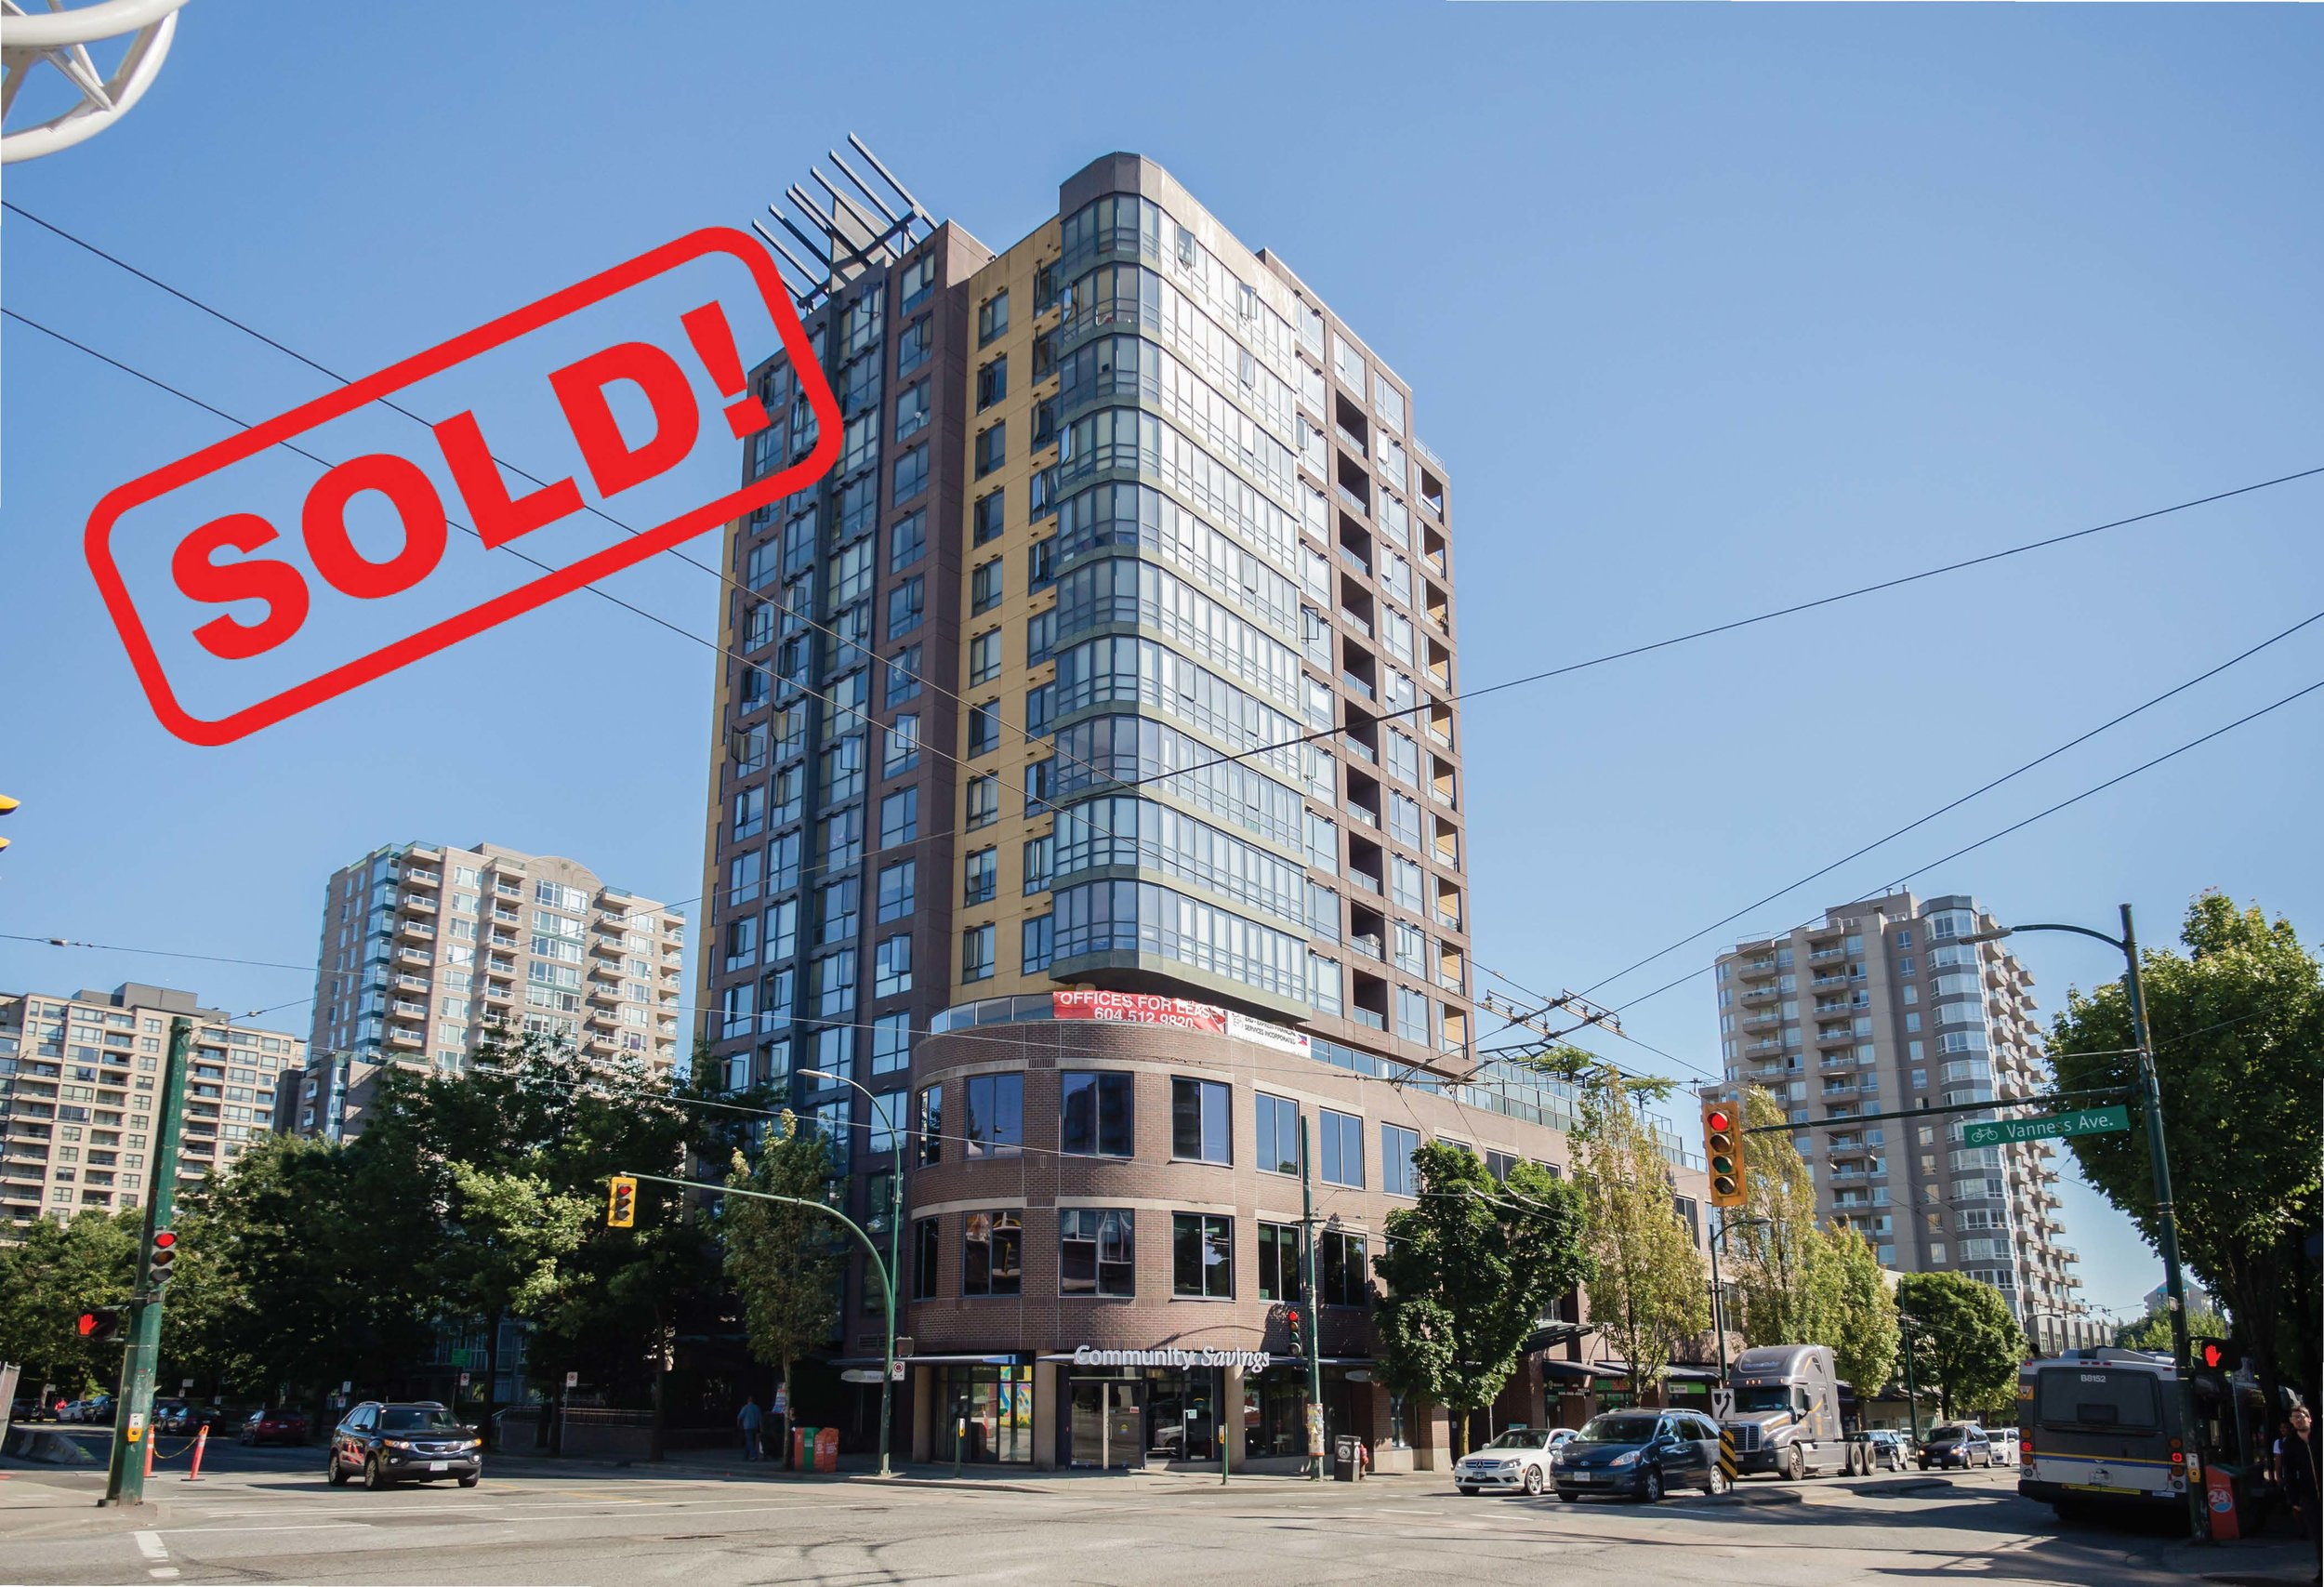 1203-3438 VANNESS AVENUE     SOLD FOR: $359,000  0 BED | 1 BATH | 406 SF